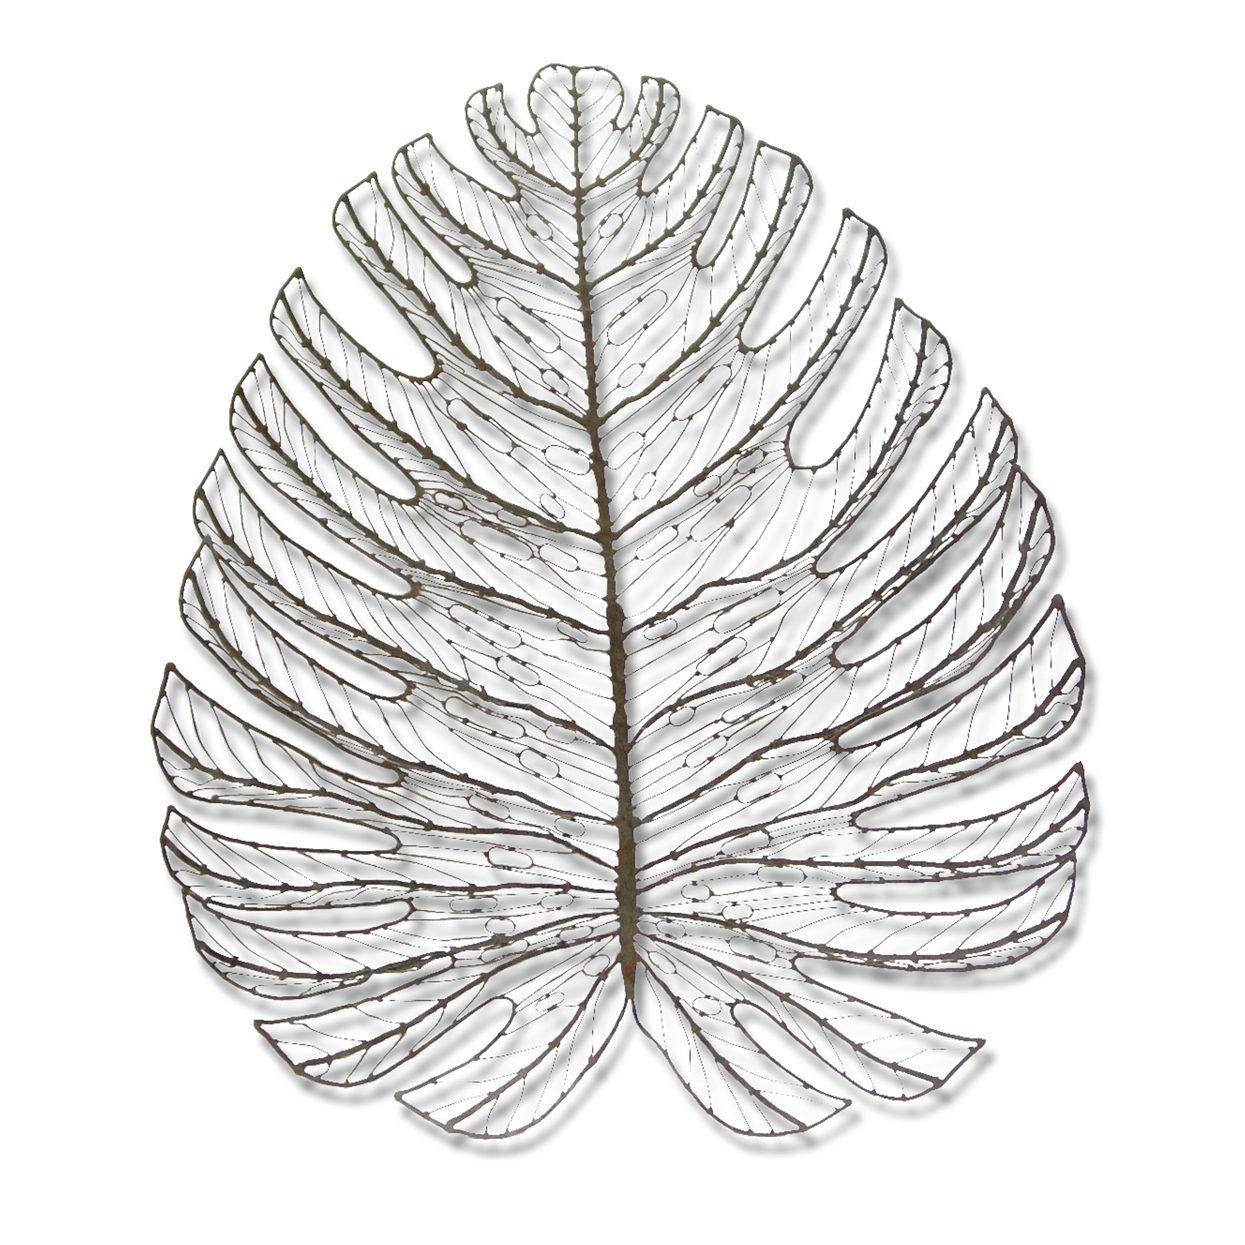 Delicieux Description. GIANT LEAF WALL DECOR